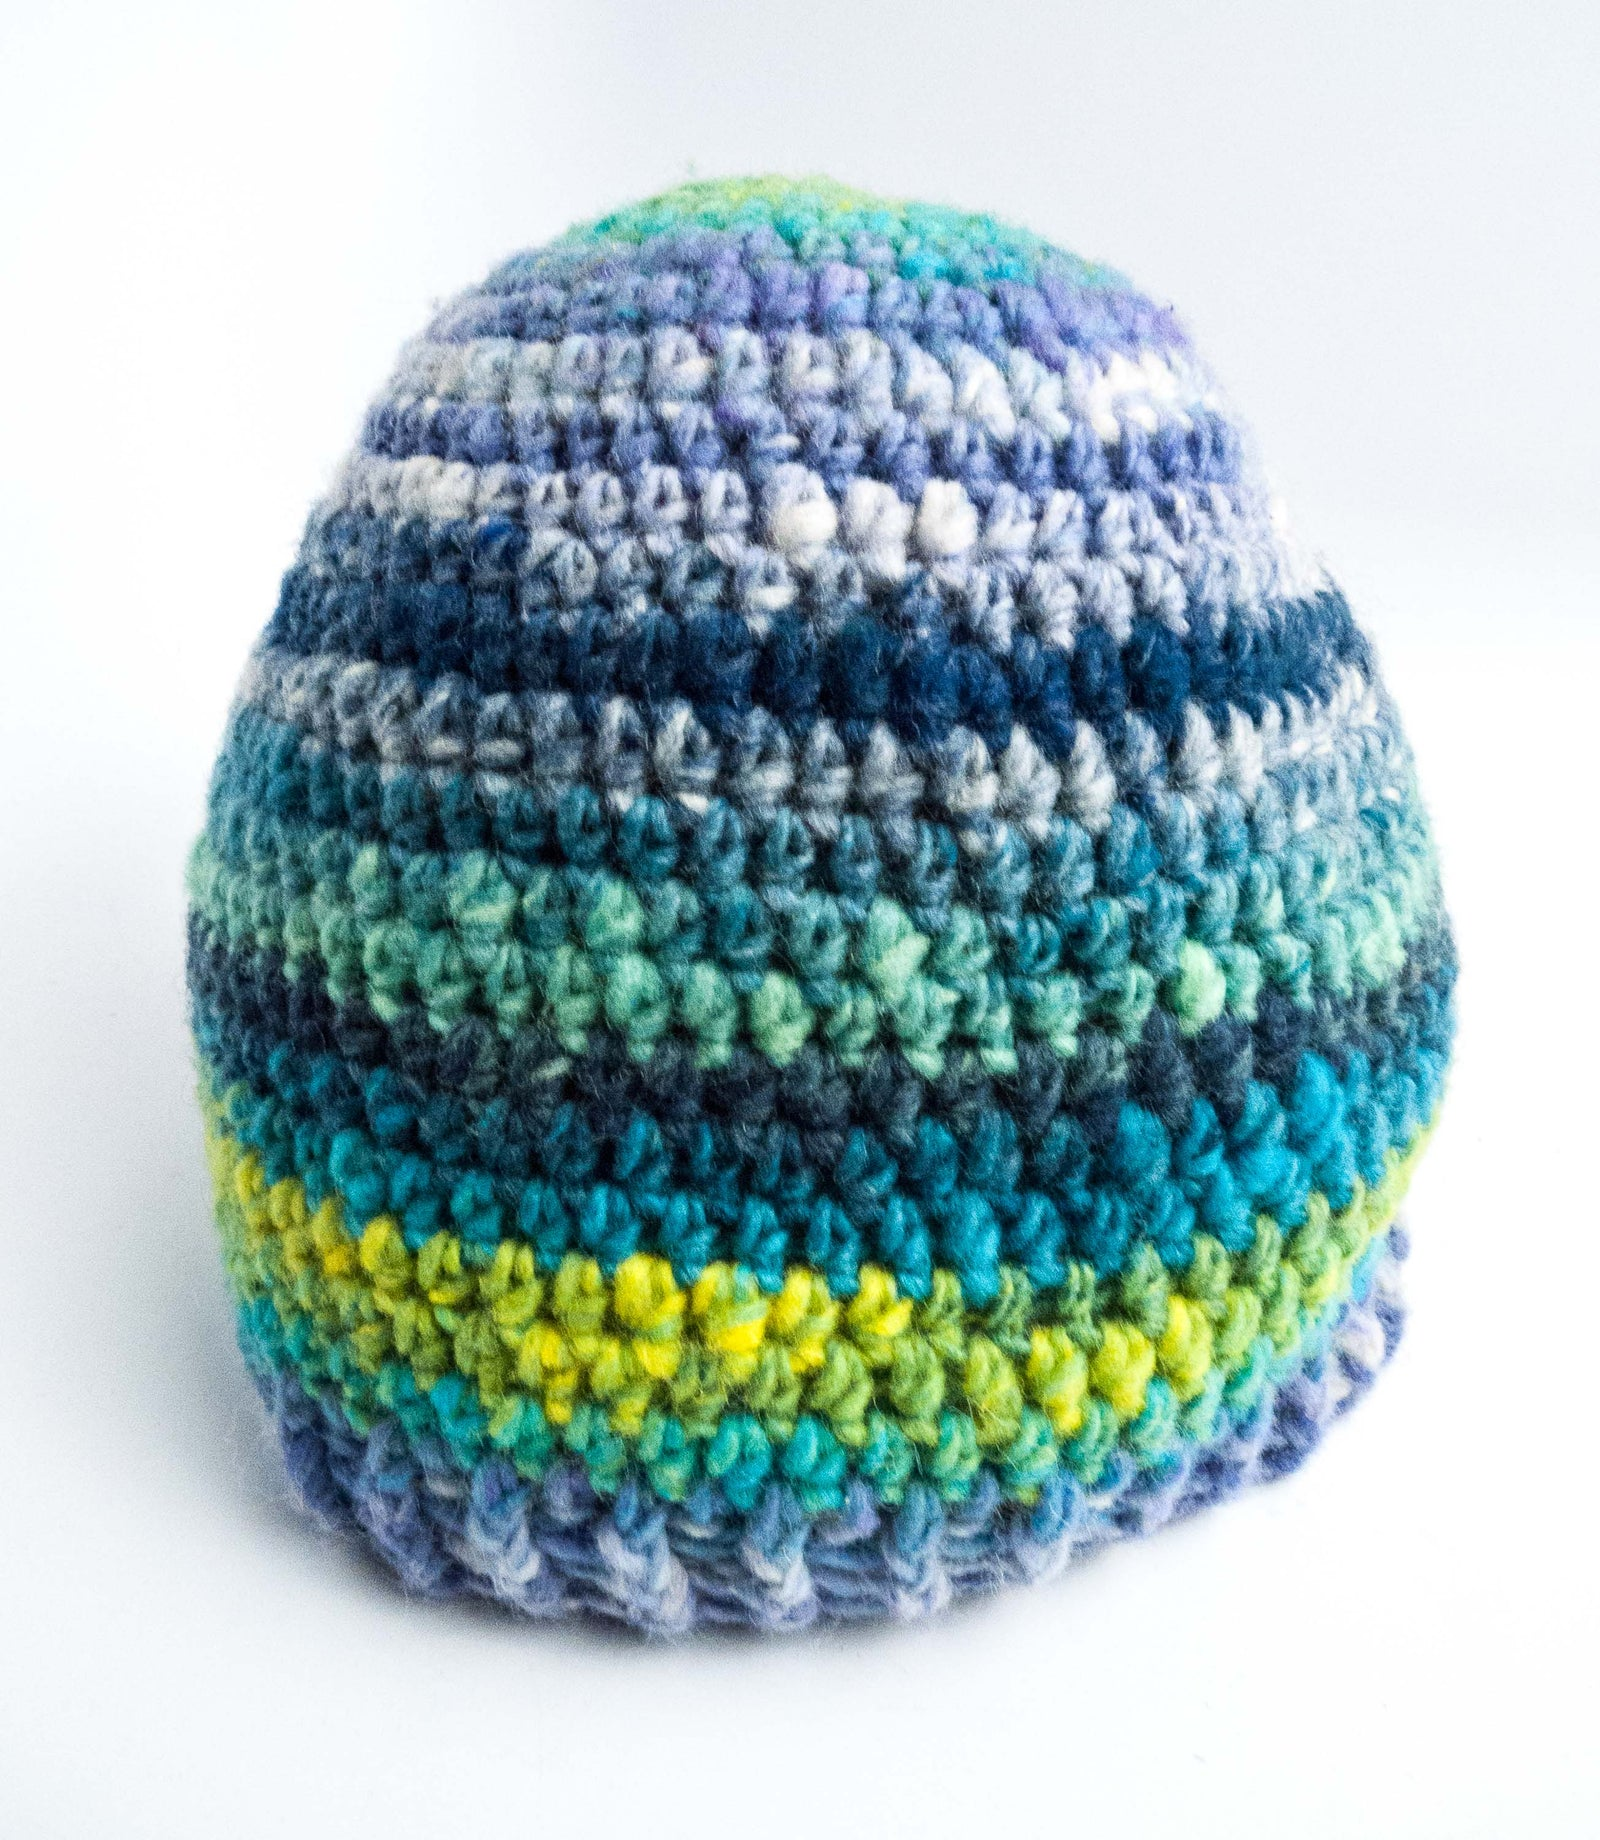 Beginning Crochet Kit - Super Simple Crochet Hat